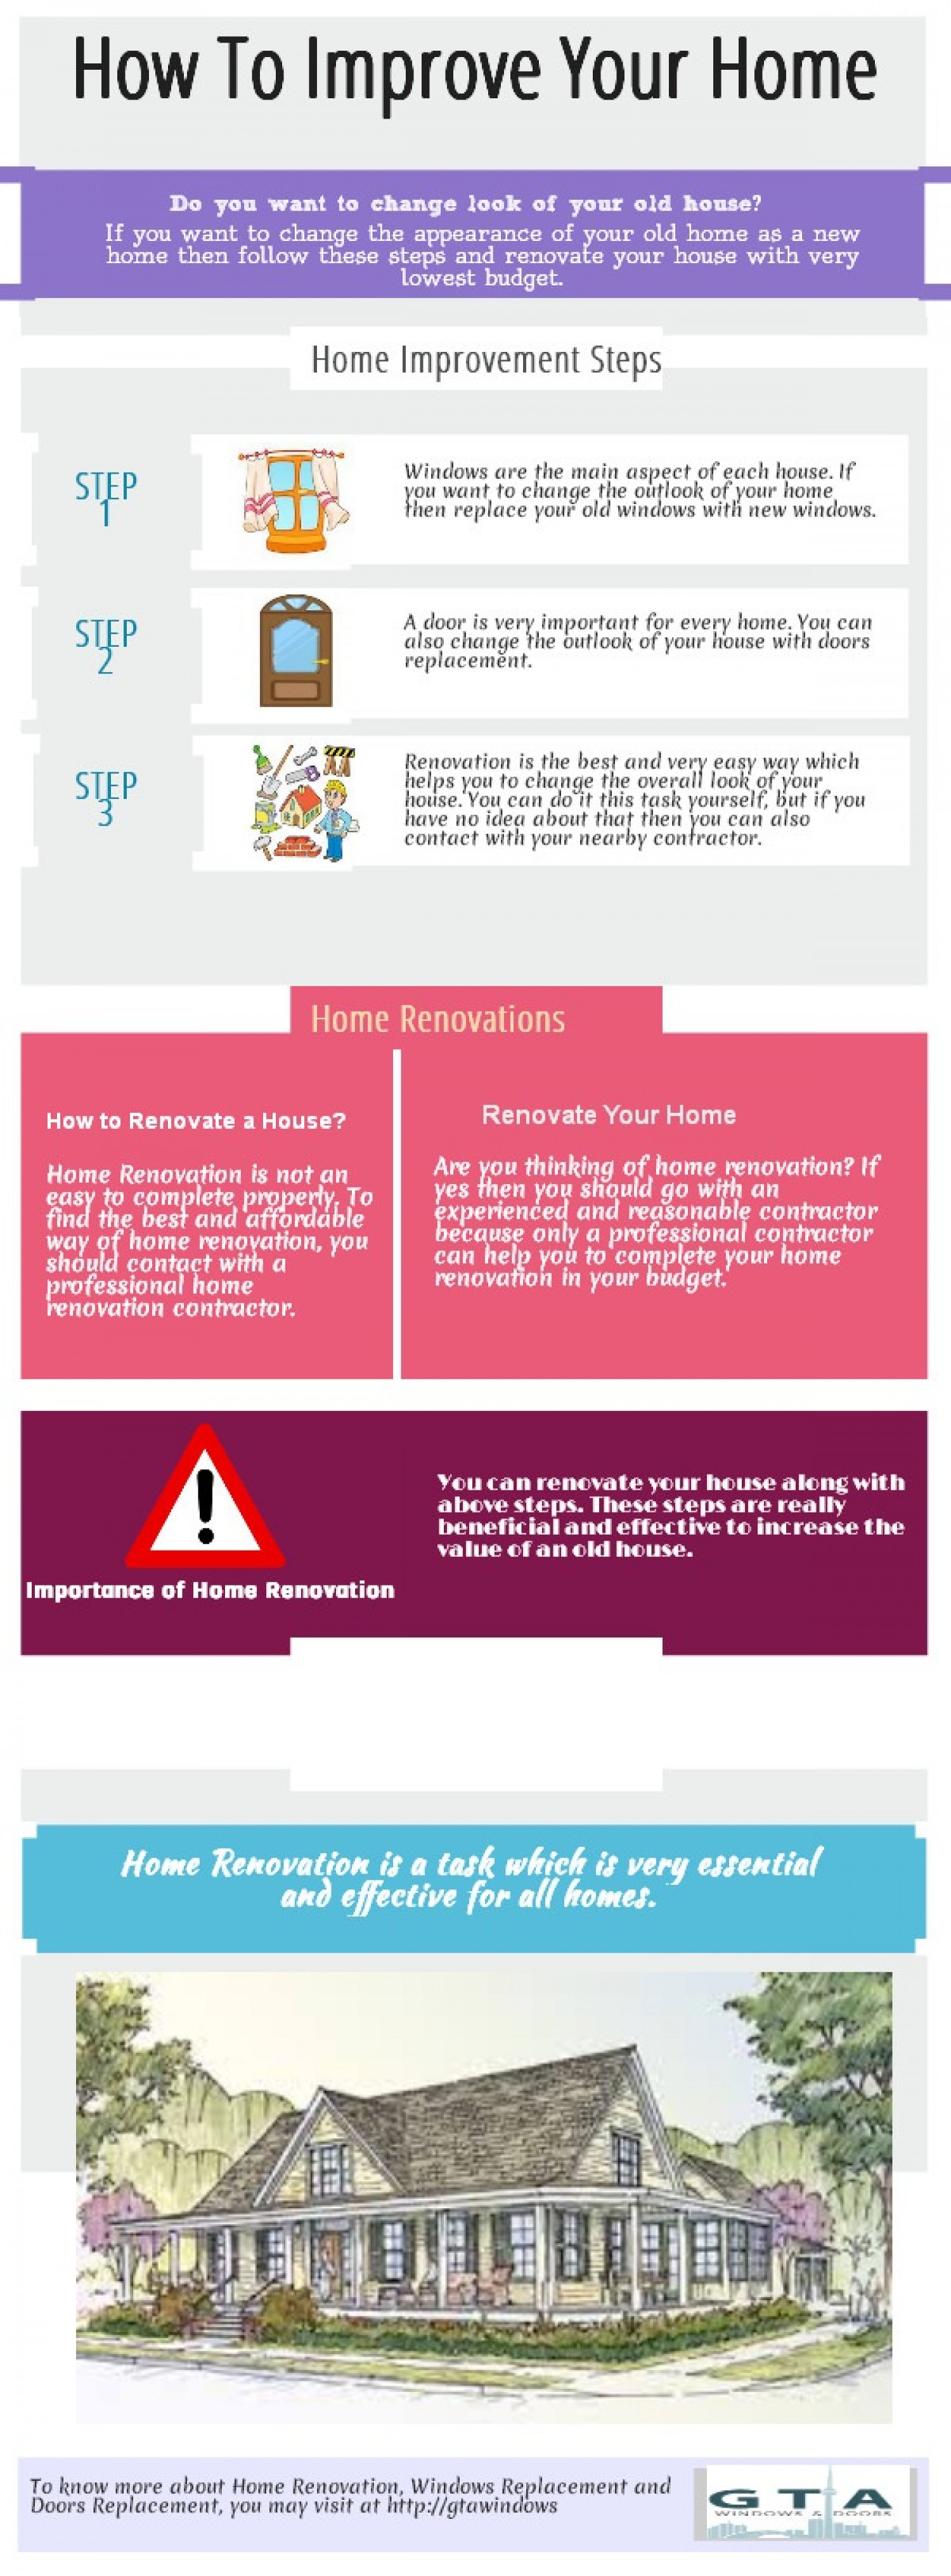 Ways to Improve Your Home Infographic